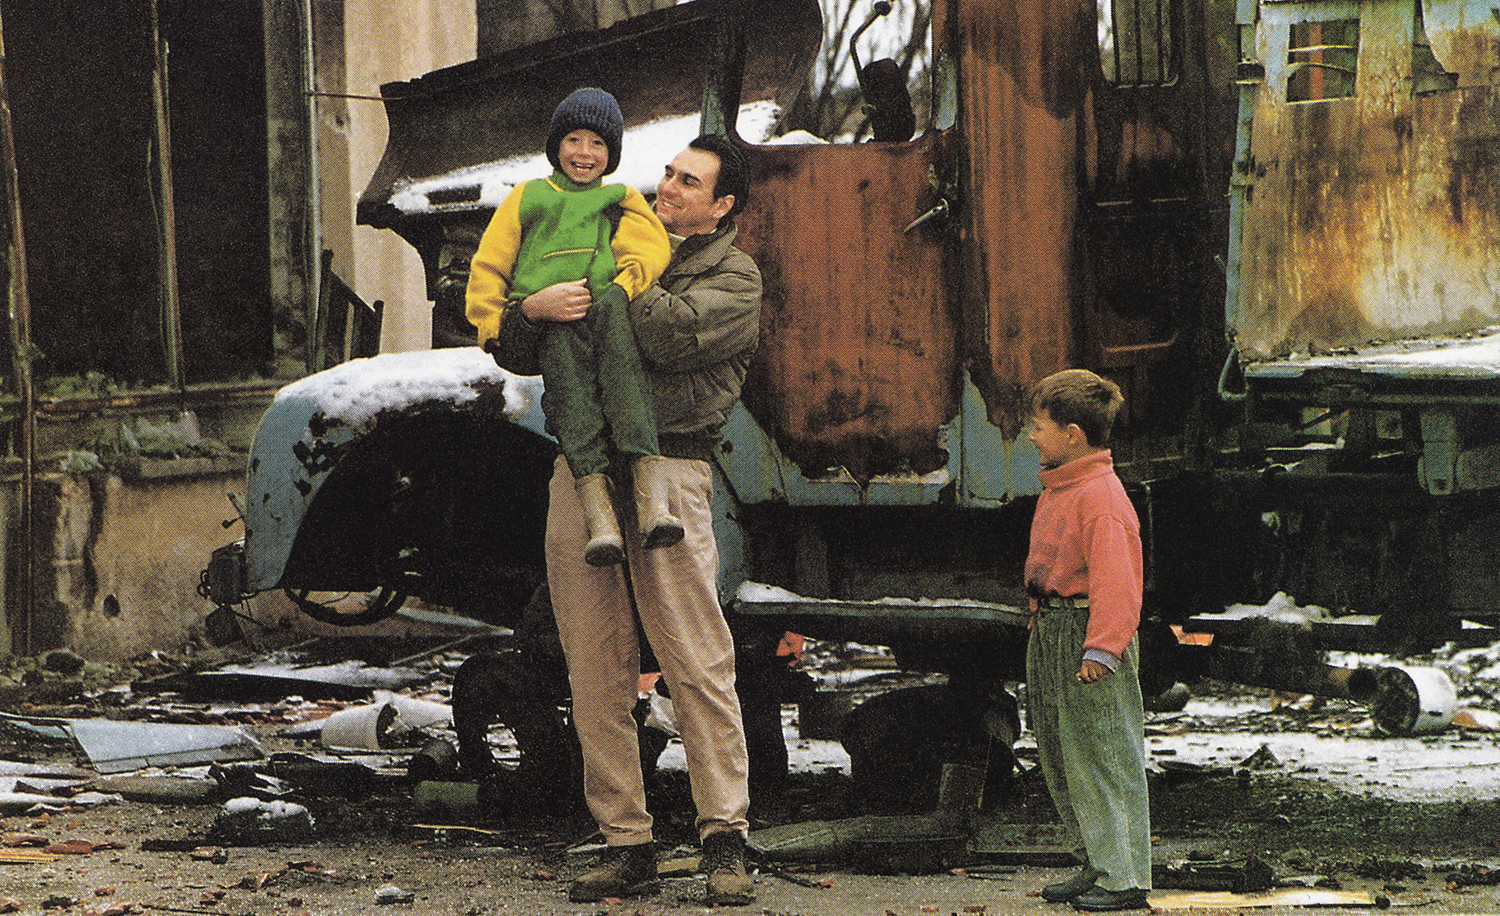 The biggest achievement of getting kids' smiles in the madness of the war. Central Bosnia.